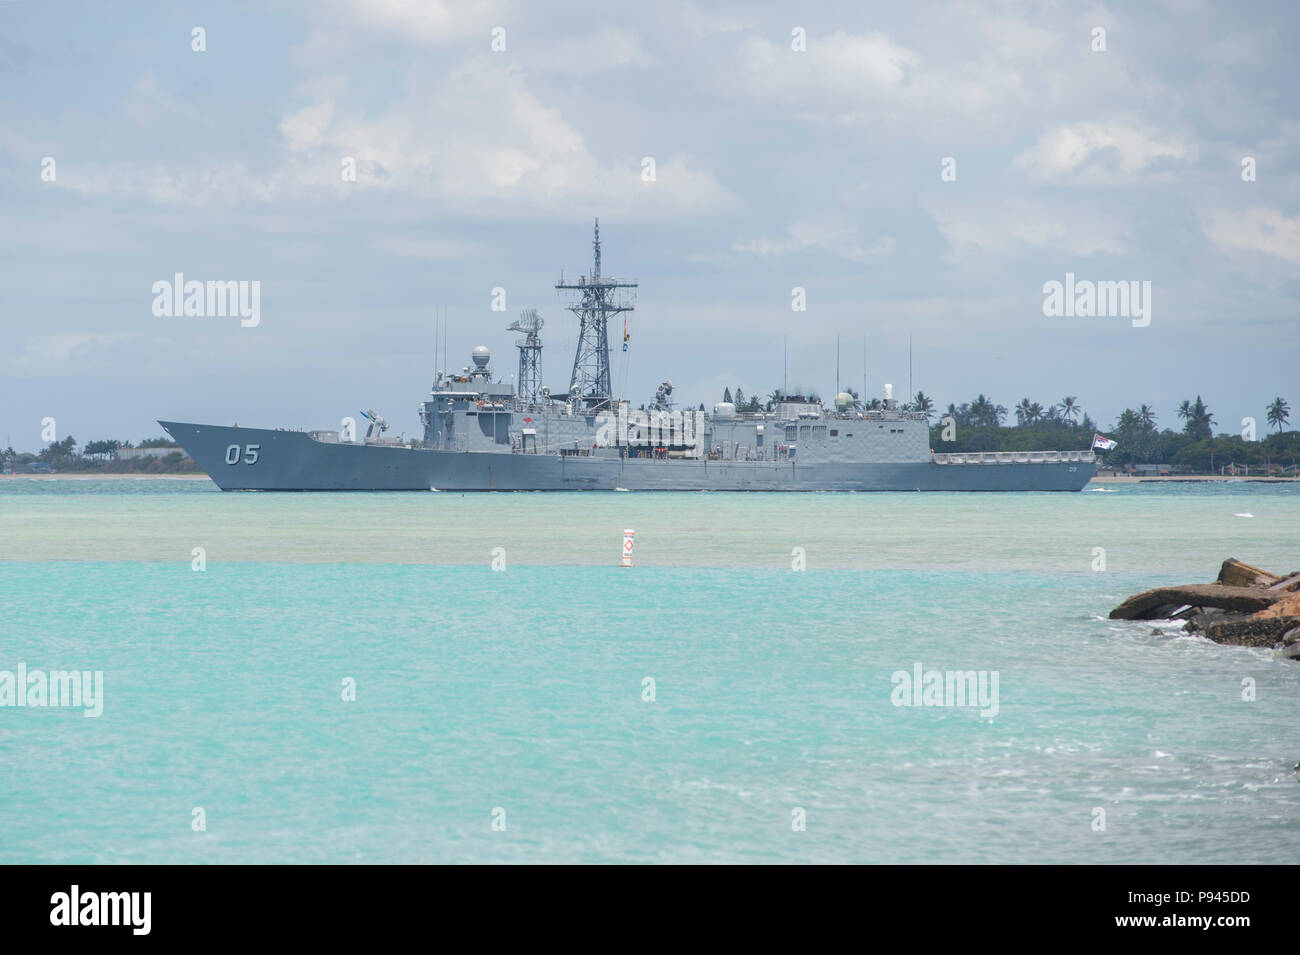 180709-N-IY142-001 PEARL HARBOR (July 9, 2018) -- Royal Australian Navy guided-missile frigate HMAS Melbourne (FFG 05) departs Joint Base Pearl Harbor-Hickam during Rim of the Pacific (RIMPAC) 2018. Twenty-five nations, 46 ships, five submarines, about 200 aircraft, and 25,000 personnel are participating in RIMPAC from June 27 to Aug. 2 in and around the Hawaiian Islands and Southern California. The world's largest international maritime exercise, RIMPAC provides a unique training opportunity while fostering and sustaining cooperative relationships among participants critical to ensuring the s - Stock Image